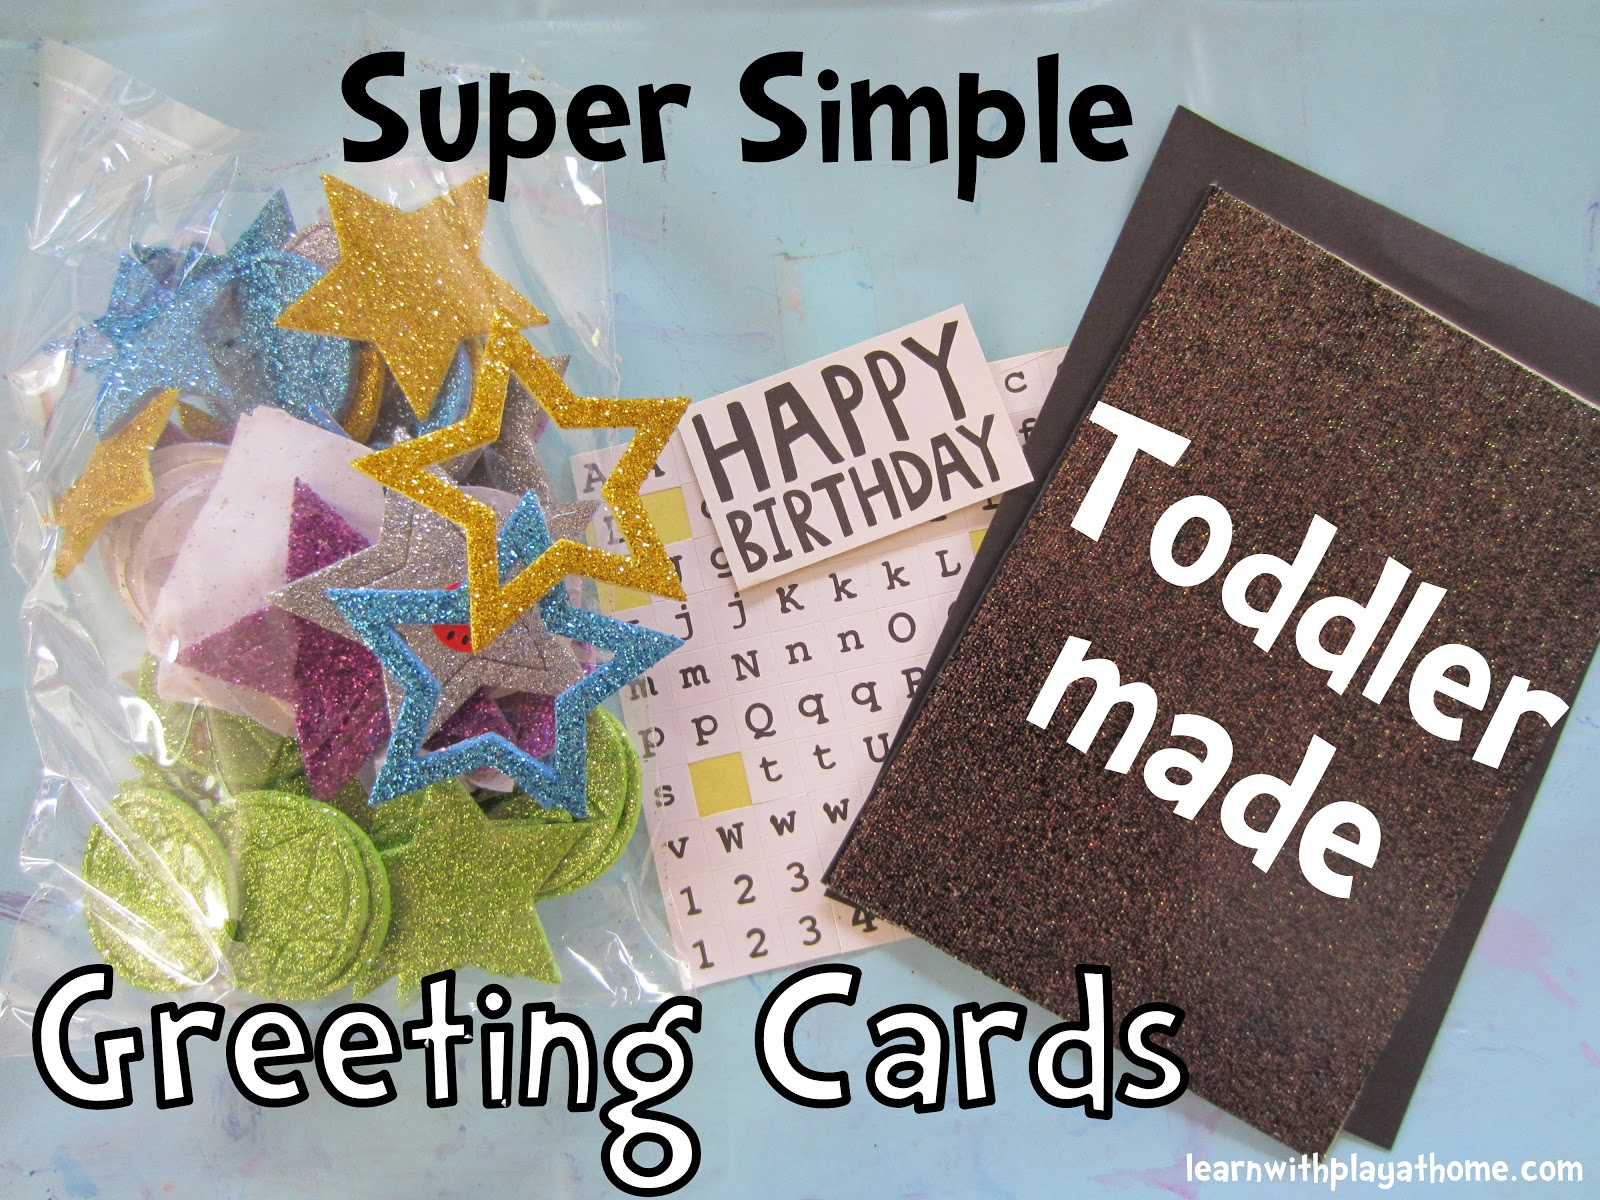 Nov 15 2012 Why Buy Greeting Cards When Your Kids Can Make